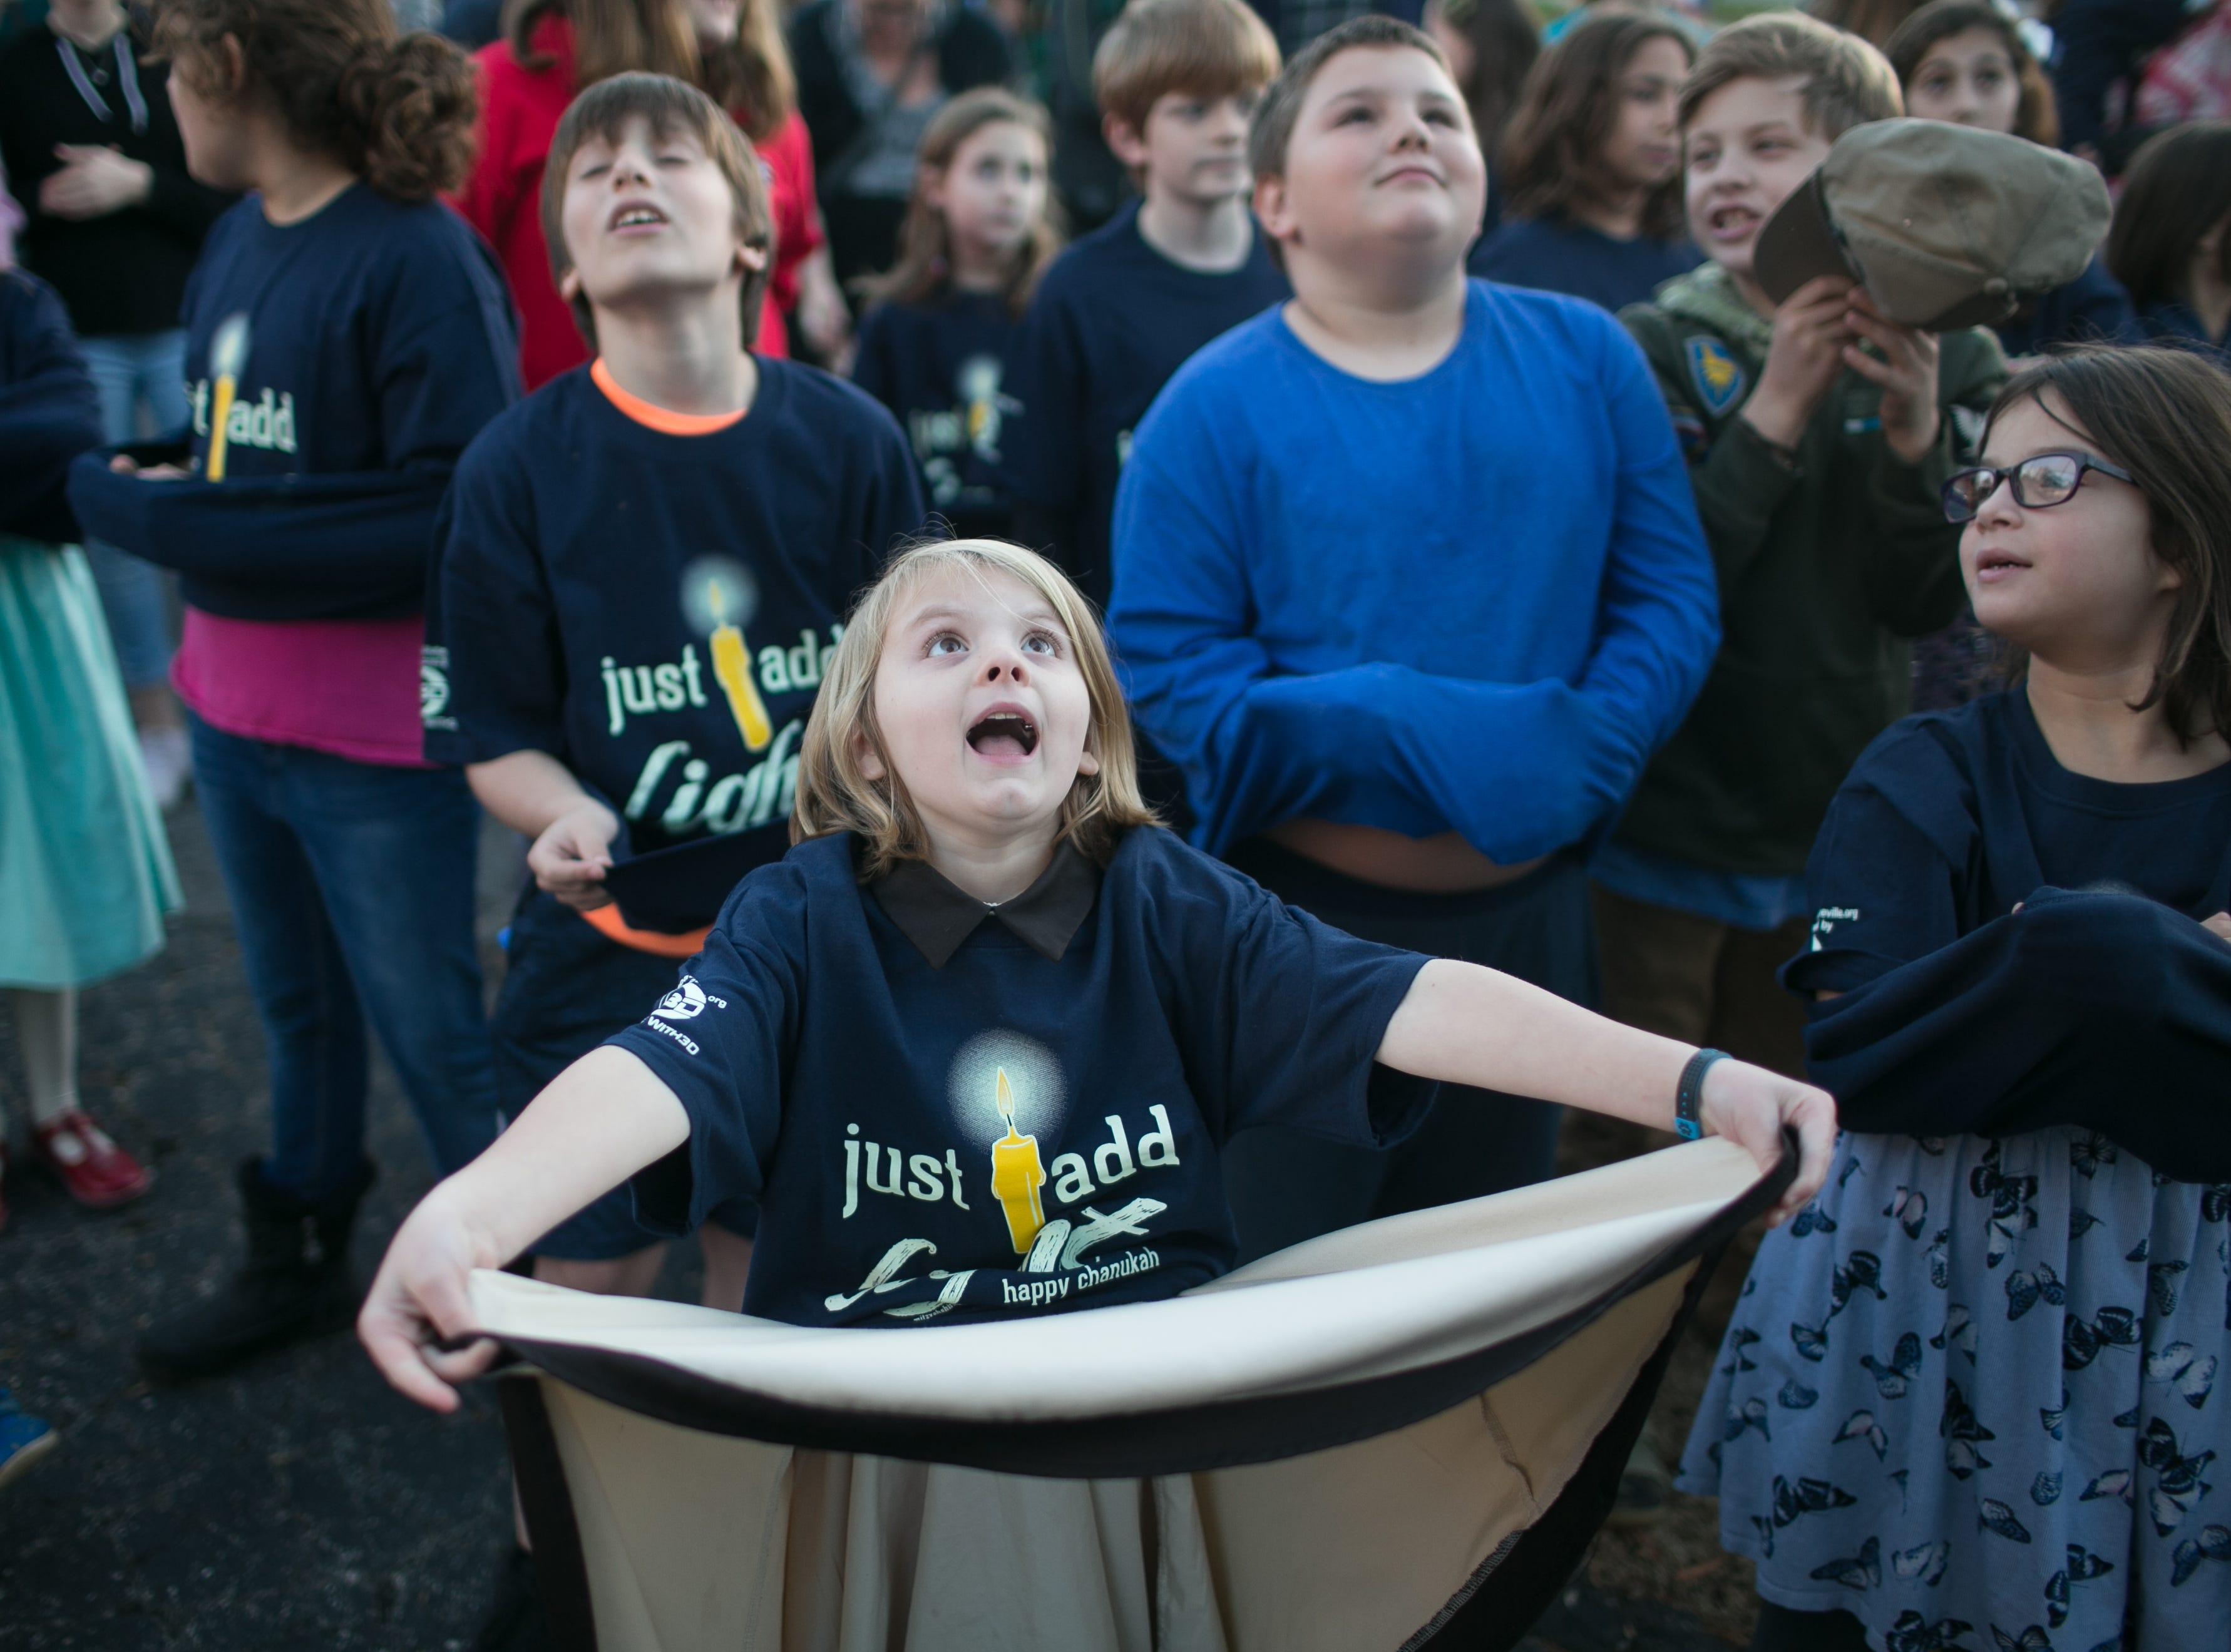 Kids wait for chocolate to fall during the Great Gelt Drop at Chanukah Live!, Asheville's community Hanukkah celebration. The event was at the Chabad House on Dec. 2, 2018 in conjunction with the grand opening of their new facility on McDowell Street.